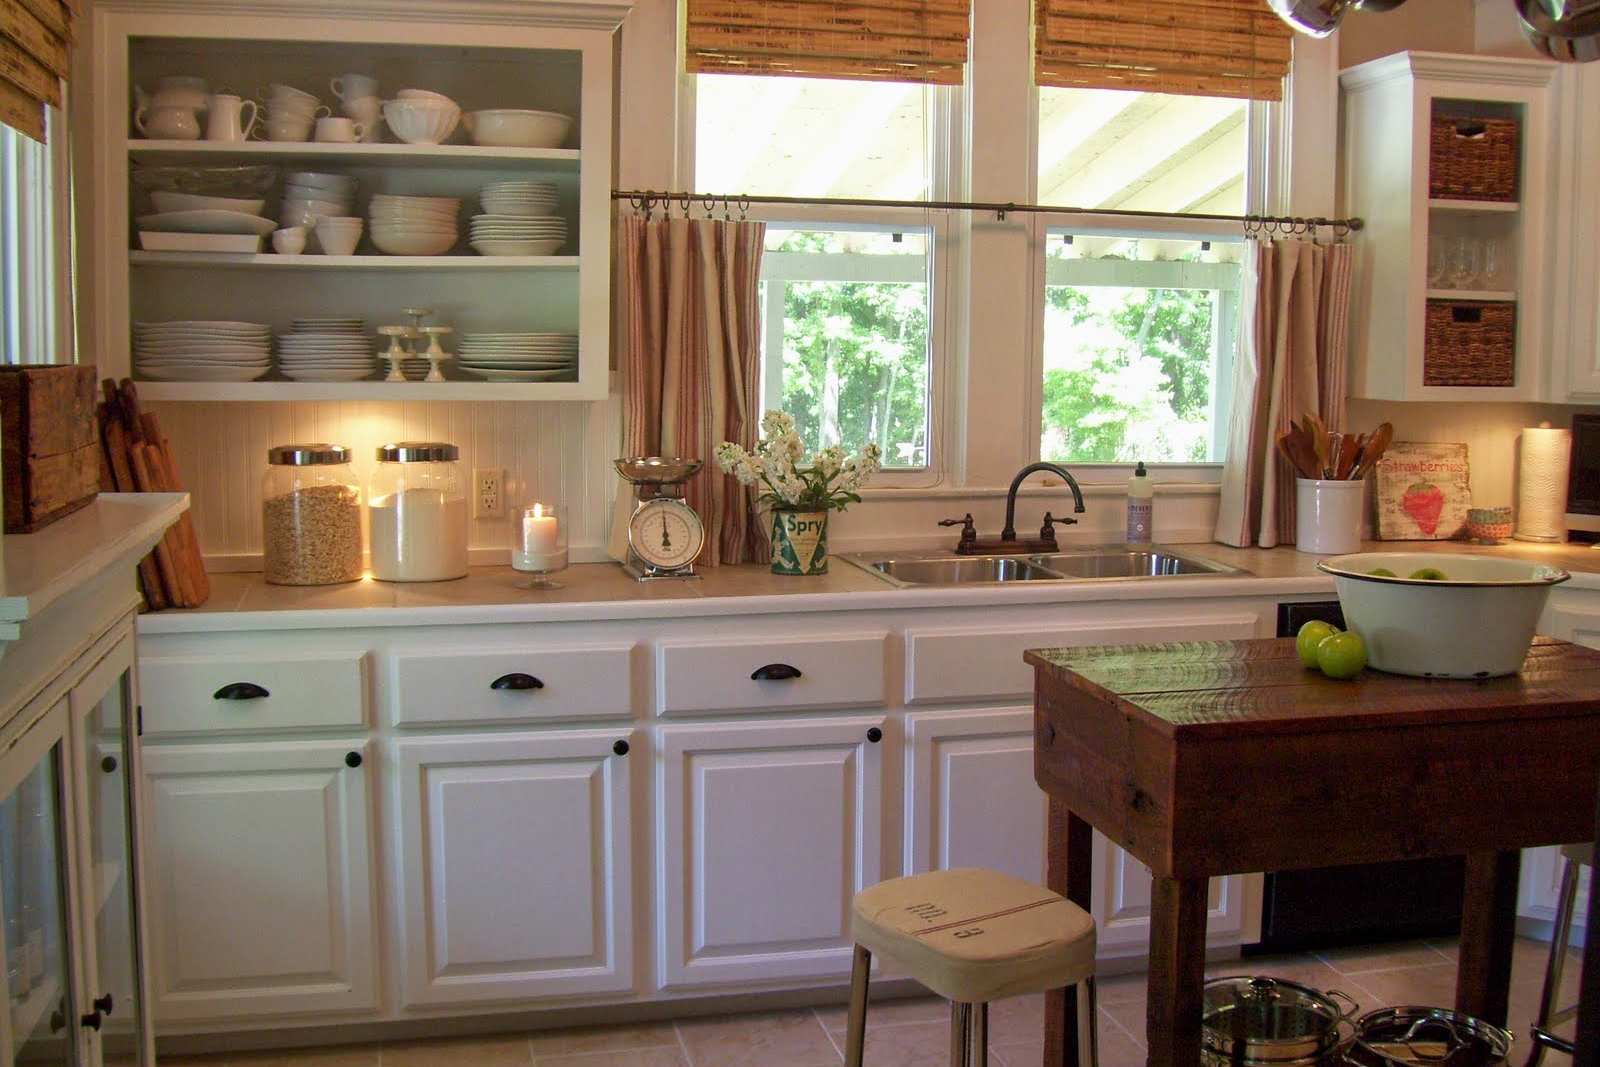 Home Renovation Ideas On A Budget Remodeling A Kitchen  Do It Yourself Kitchen Remodel